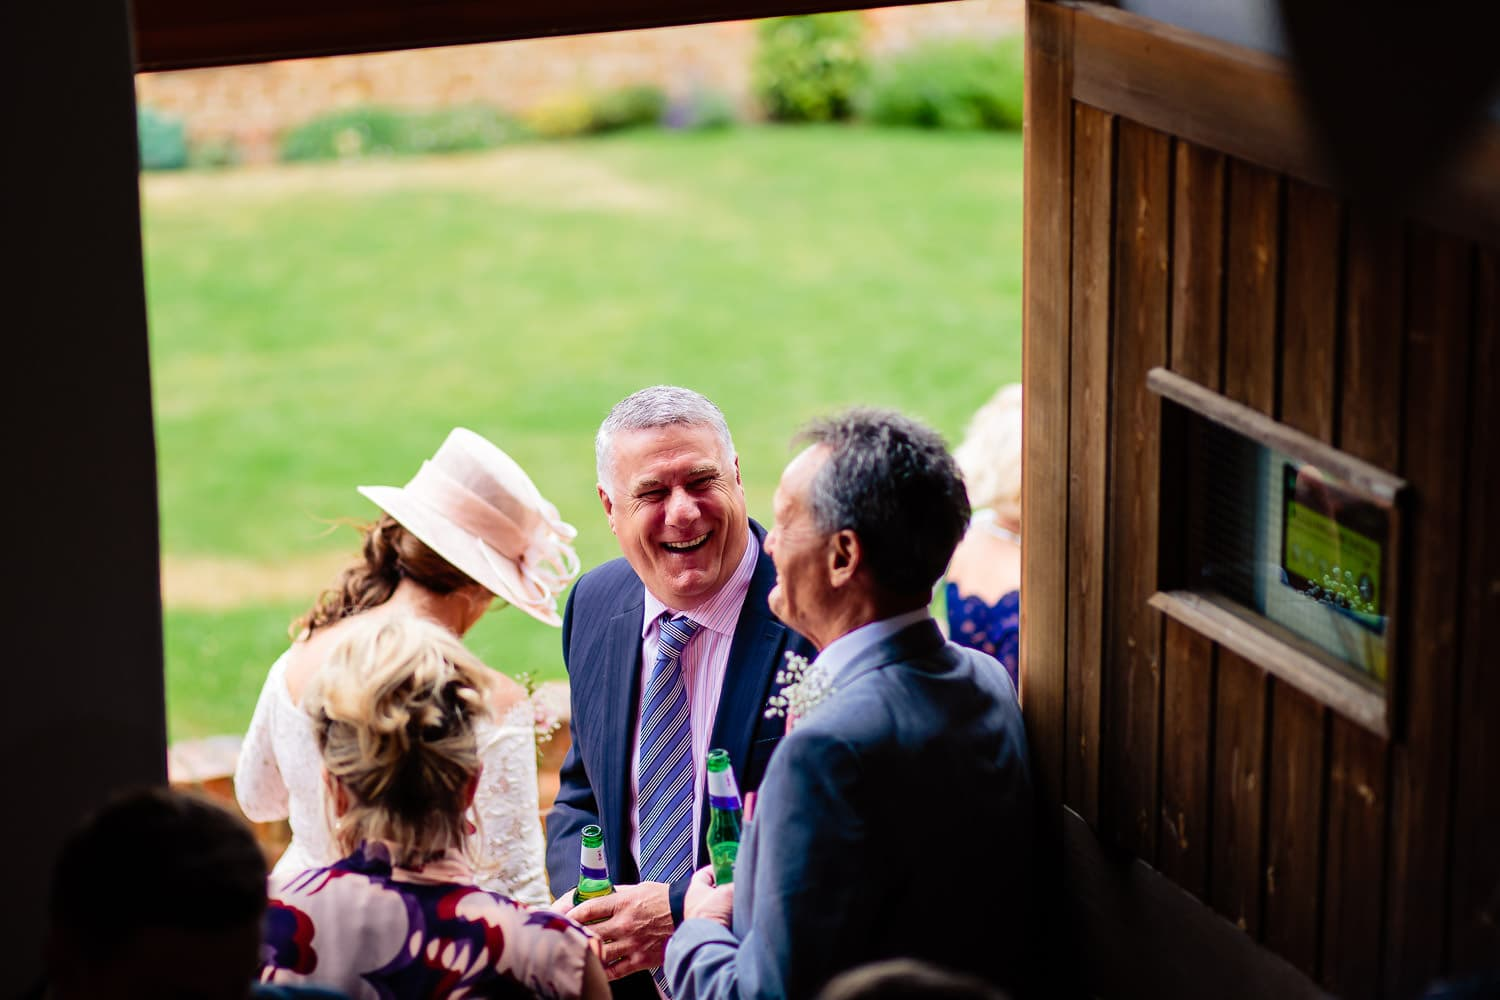 The Granary at Fawsley Wedding guests laughing and smiling